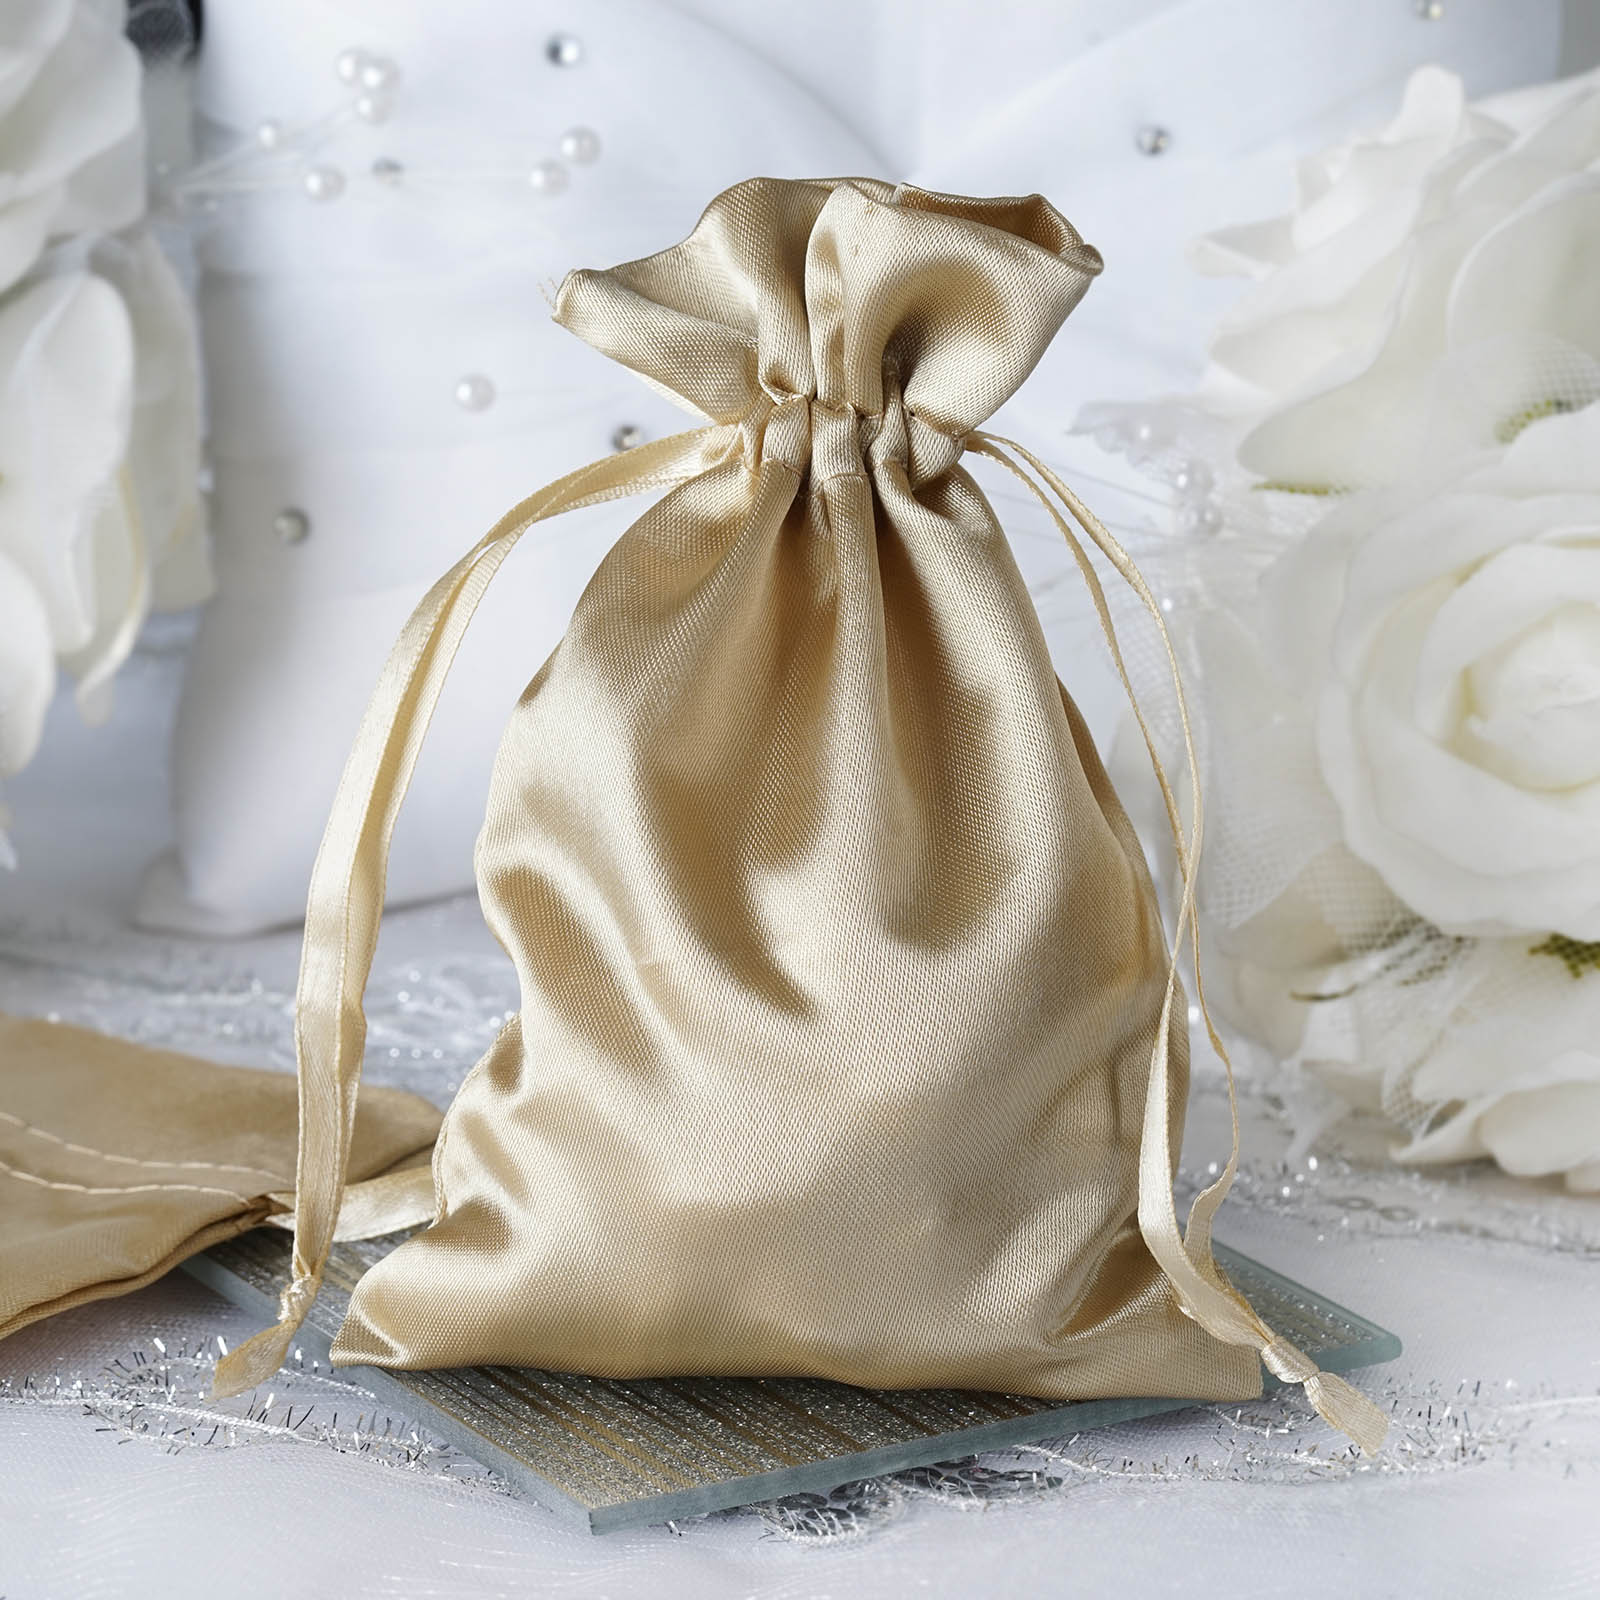 """Wedding Gifts Wholesale: 120 Pcs 4x5"""" SATIN FAVOR BAGS Wedding Party Reception Gift"""